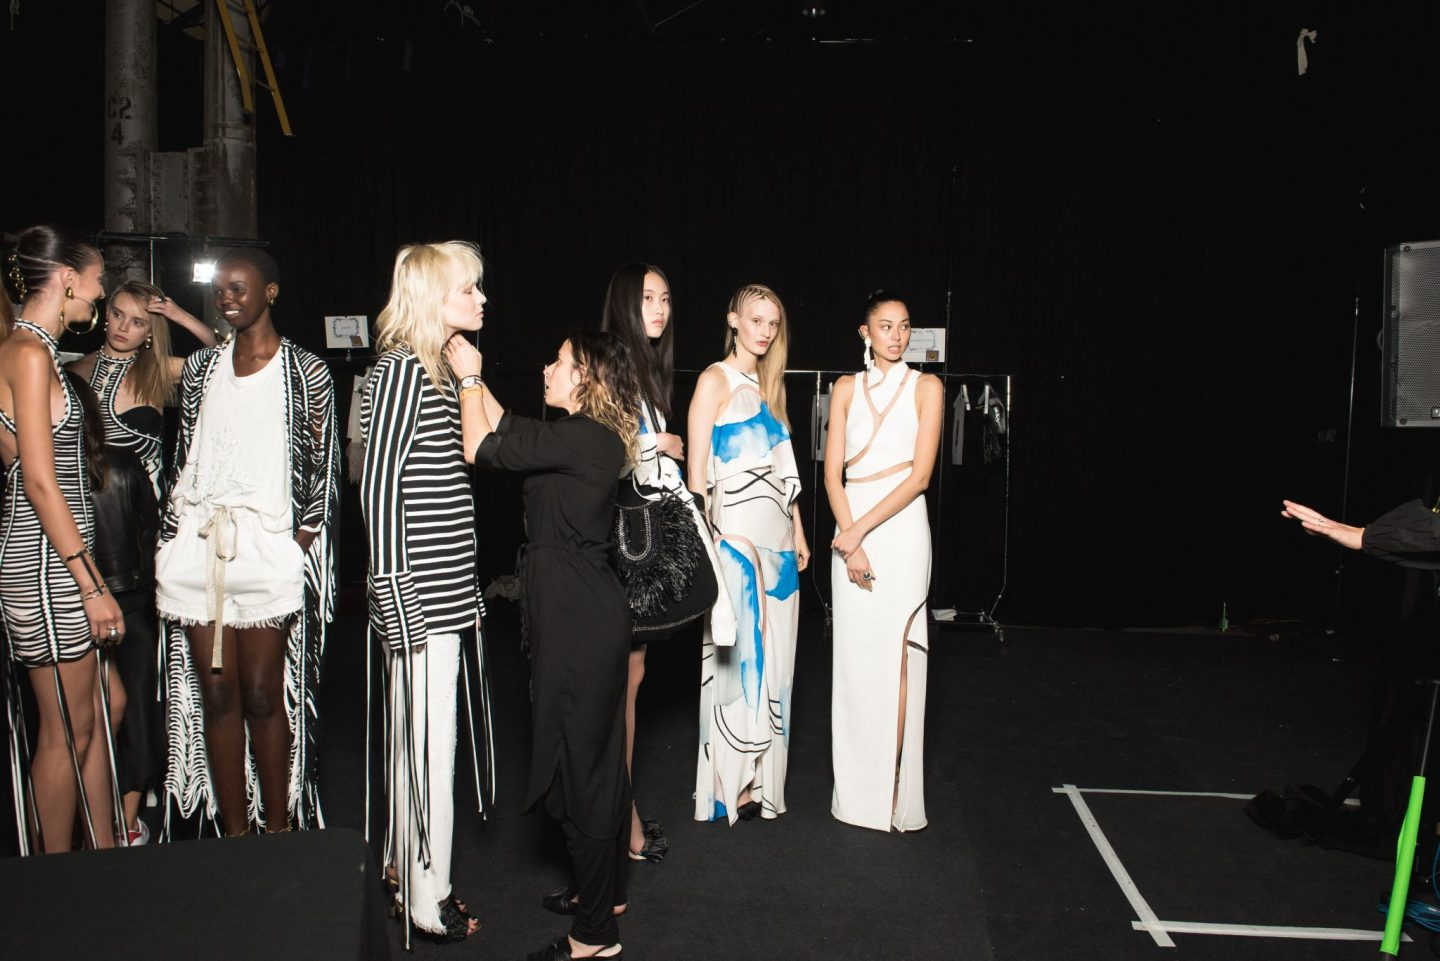 TOP 5 LATEST TRENDS OF FASHION WEEK 2021 FOR SPRING/SUMMER